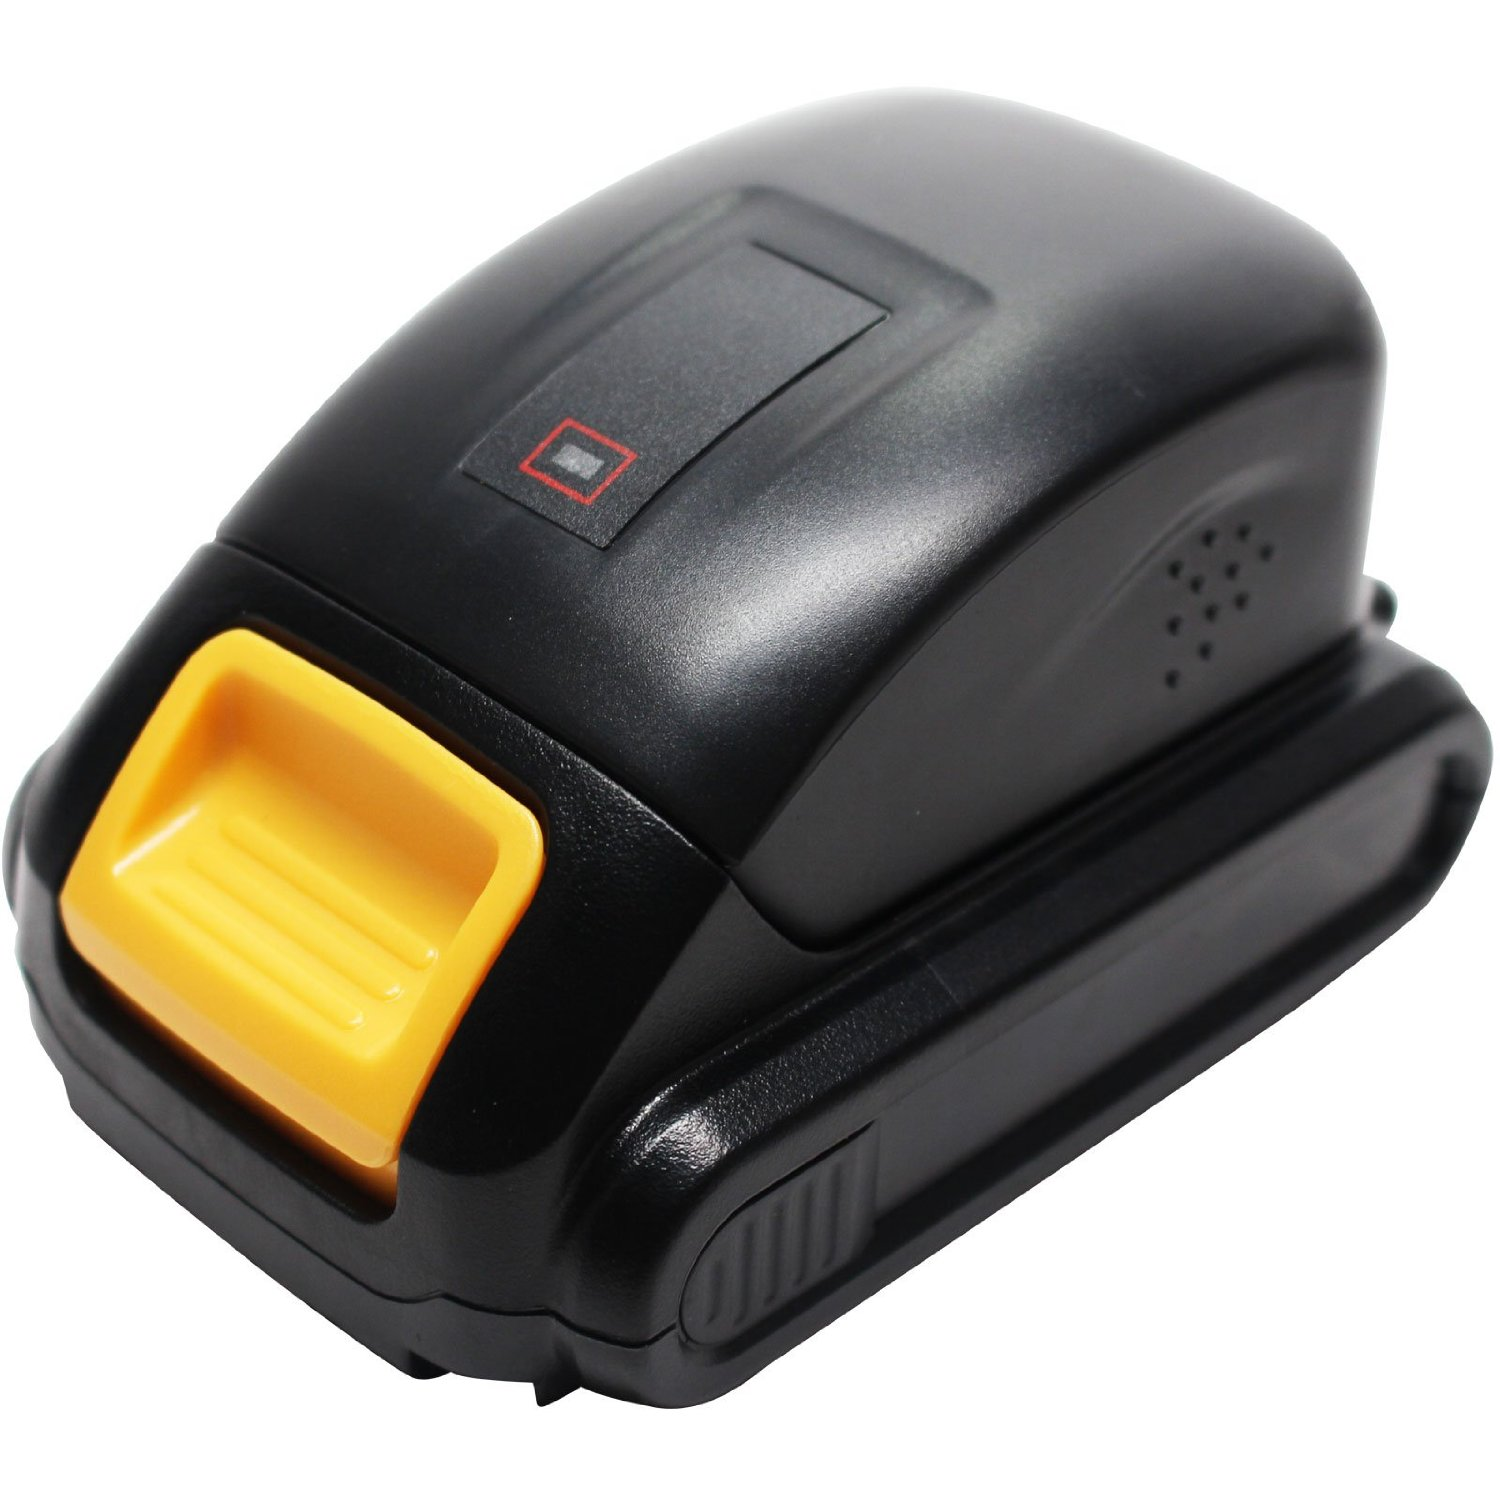 Replacement DeWALT DCR006 Battery with USB Power Source - For DeWALT 20V Lithium-Ion Power Tool Battery (1500mAh)